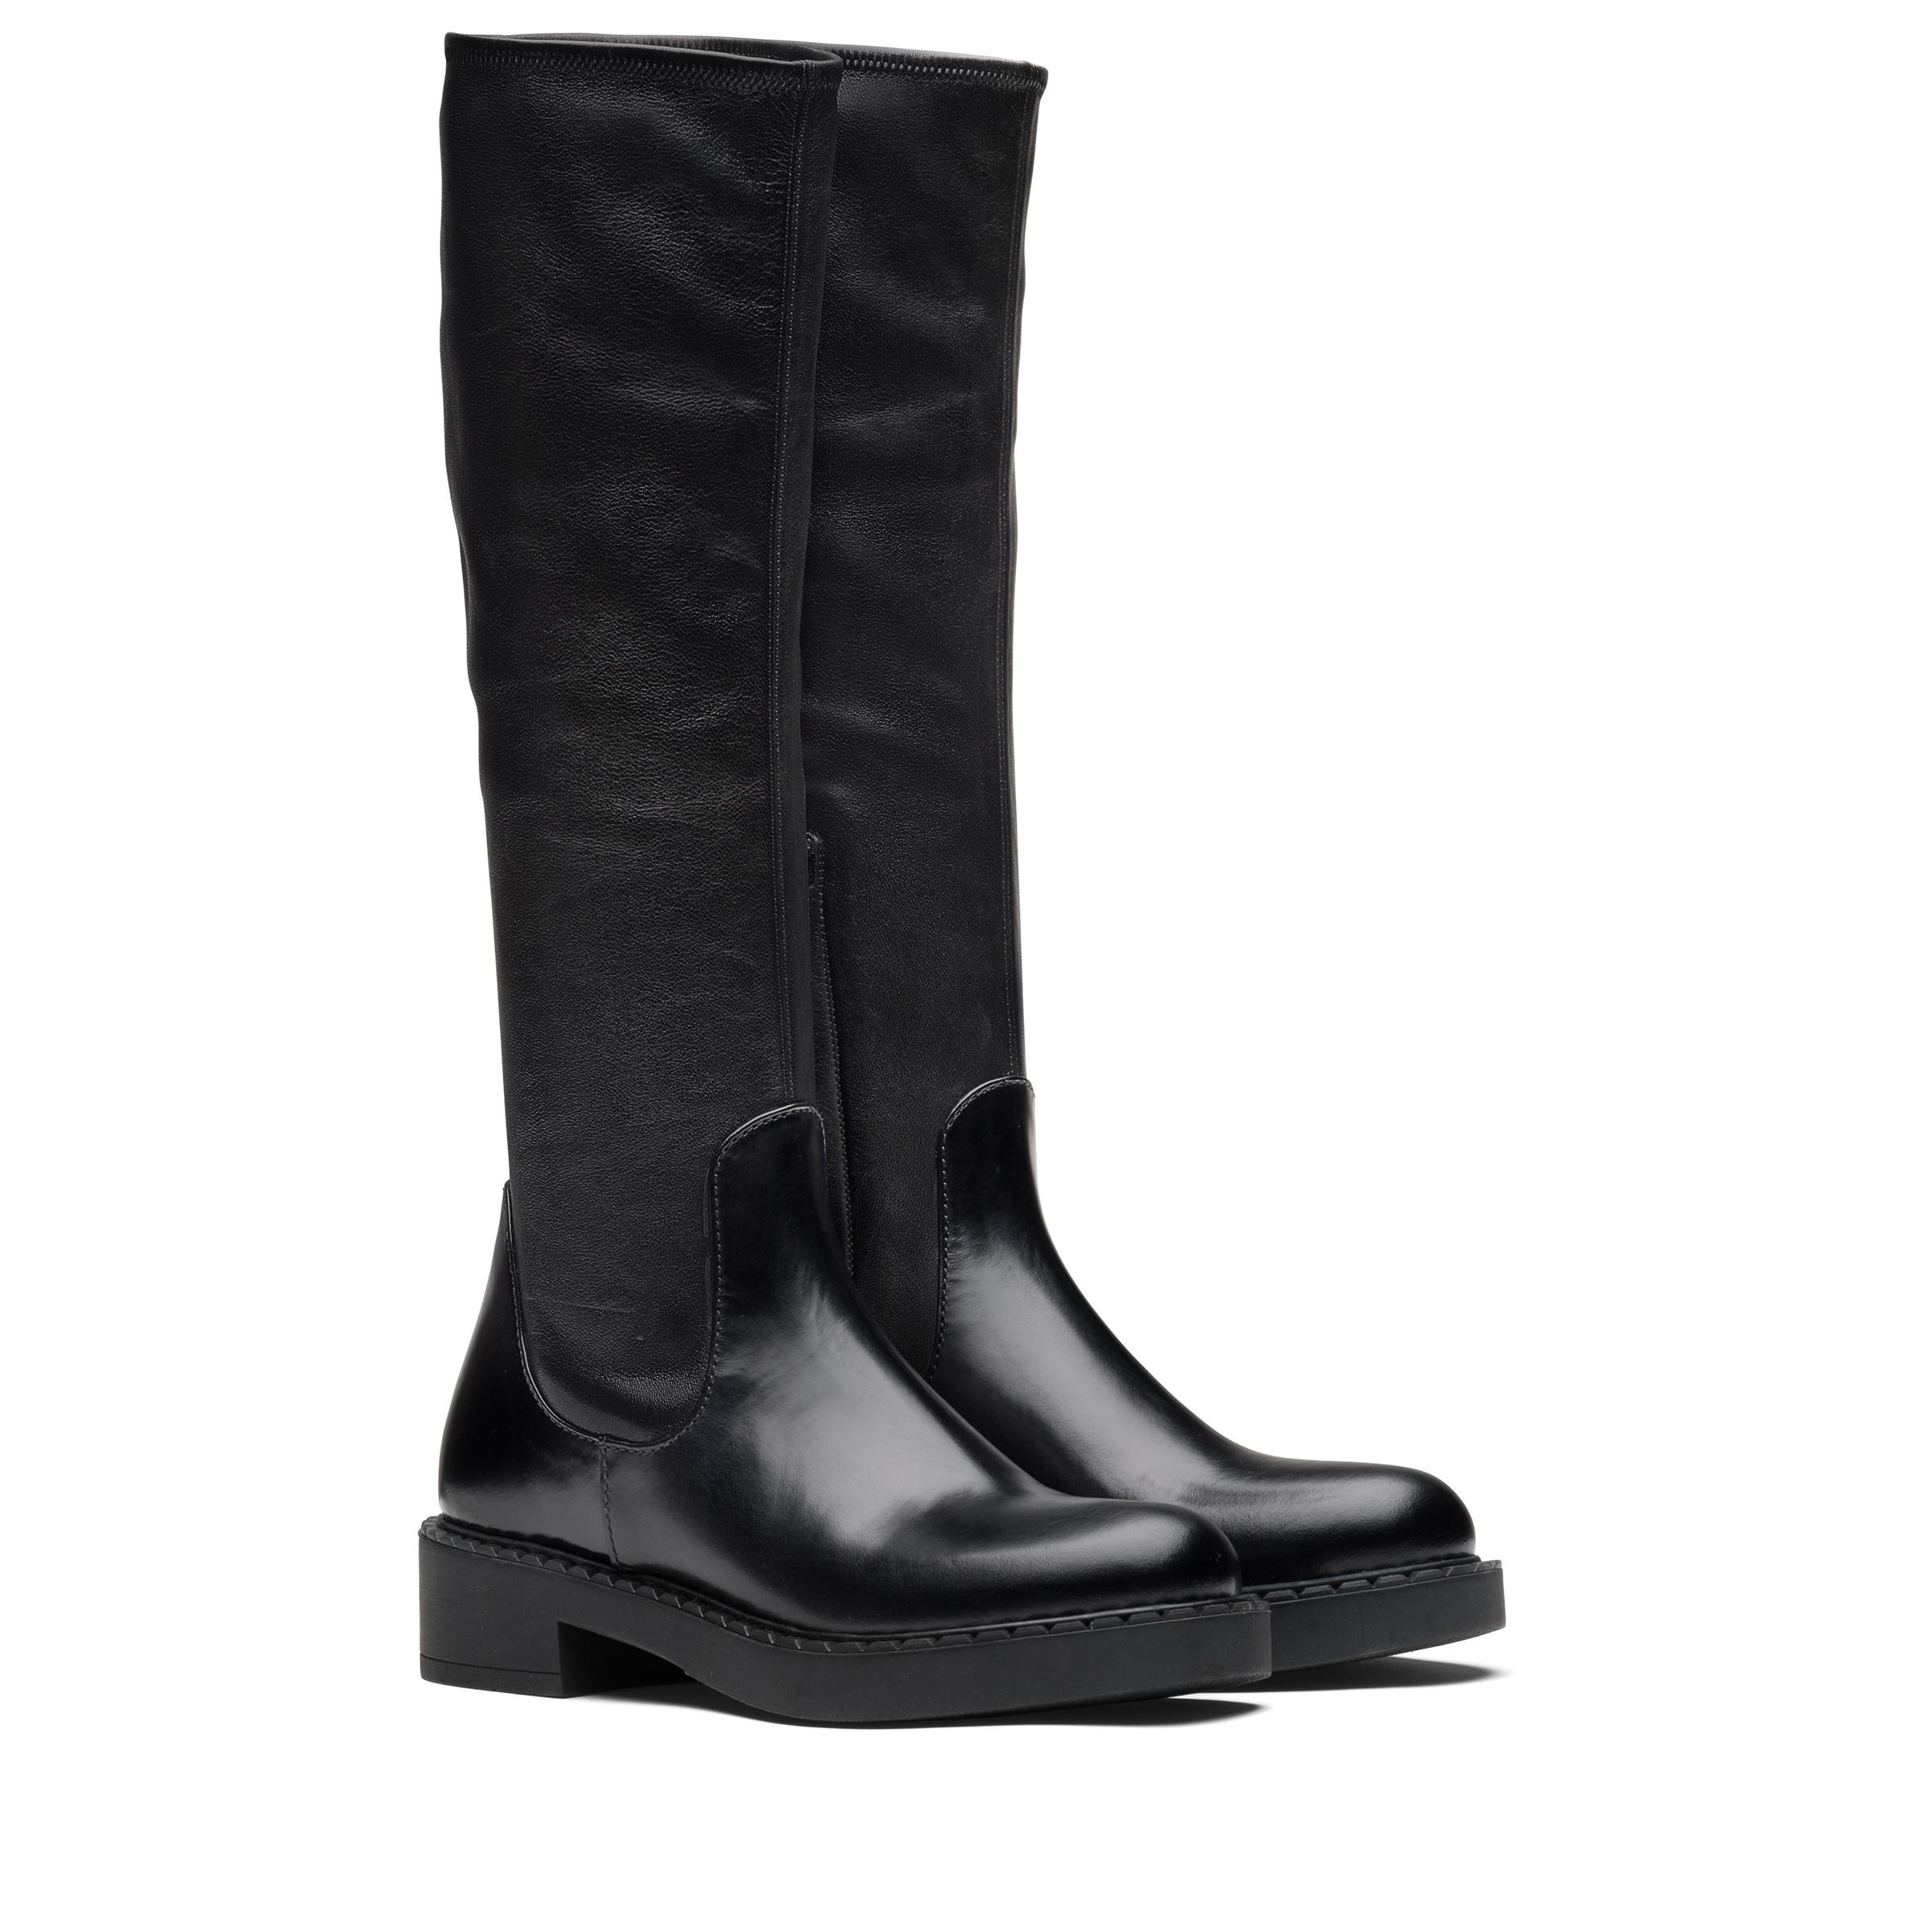 Brushed Leather And Stretch Nappa Leather Boots Women Black